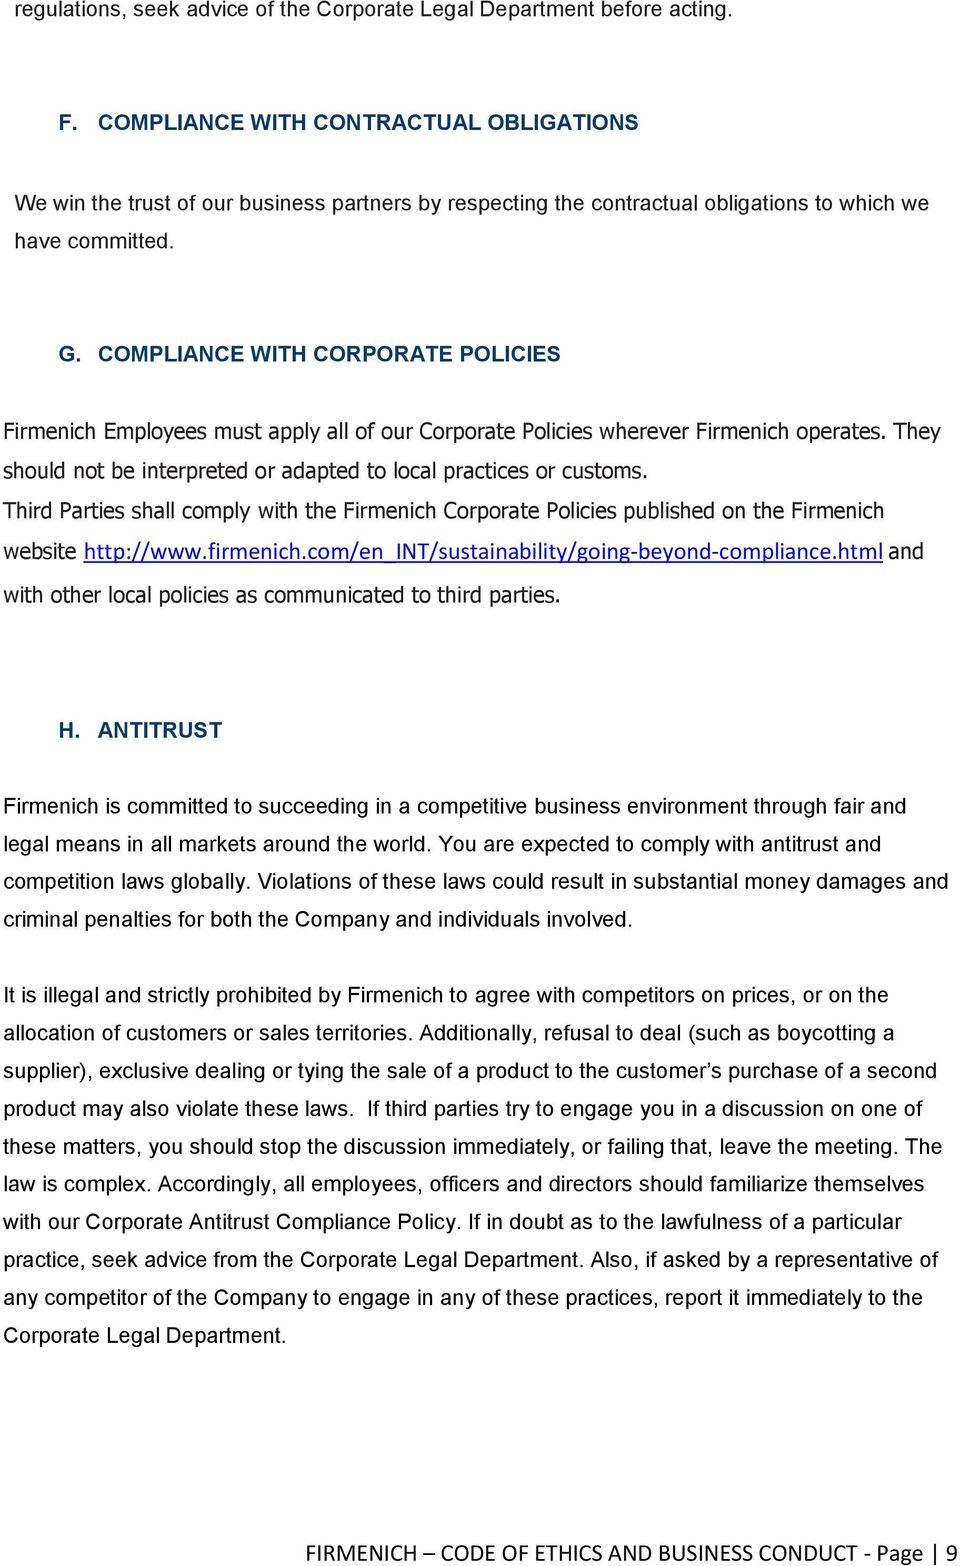 COMPLIANCE WITH CORPORATE POLICIES Firmenich Employees must apply all of our Corporate Policies wherever Firmenich operates. They should not be interpreted or adapted to local practices or customs.